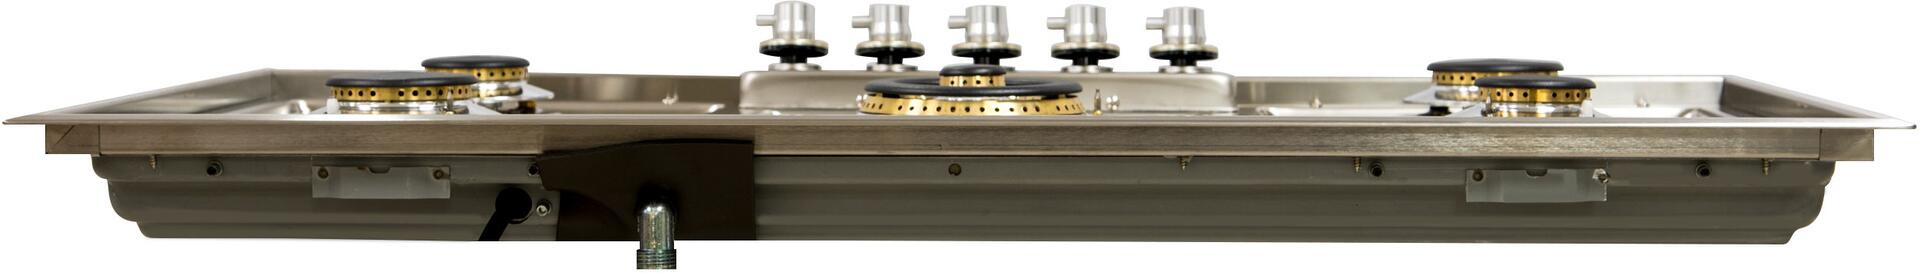 Ilve  UHP95CI Gas Cooktop Stainless Steel, Rear View